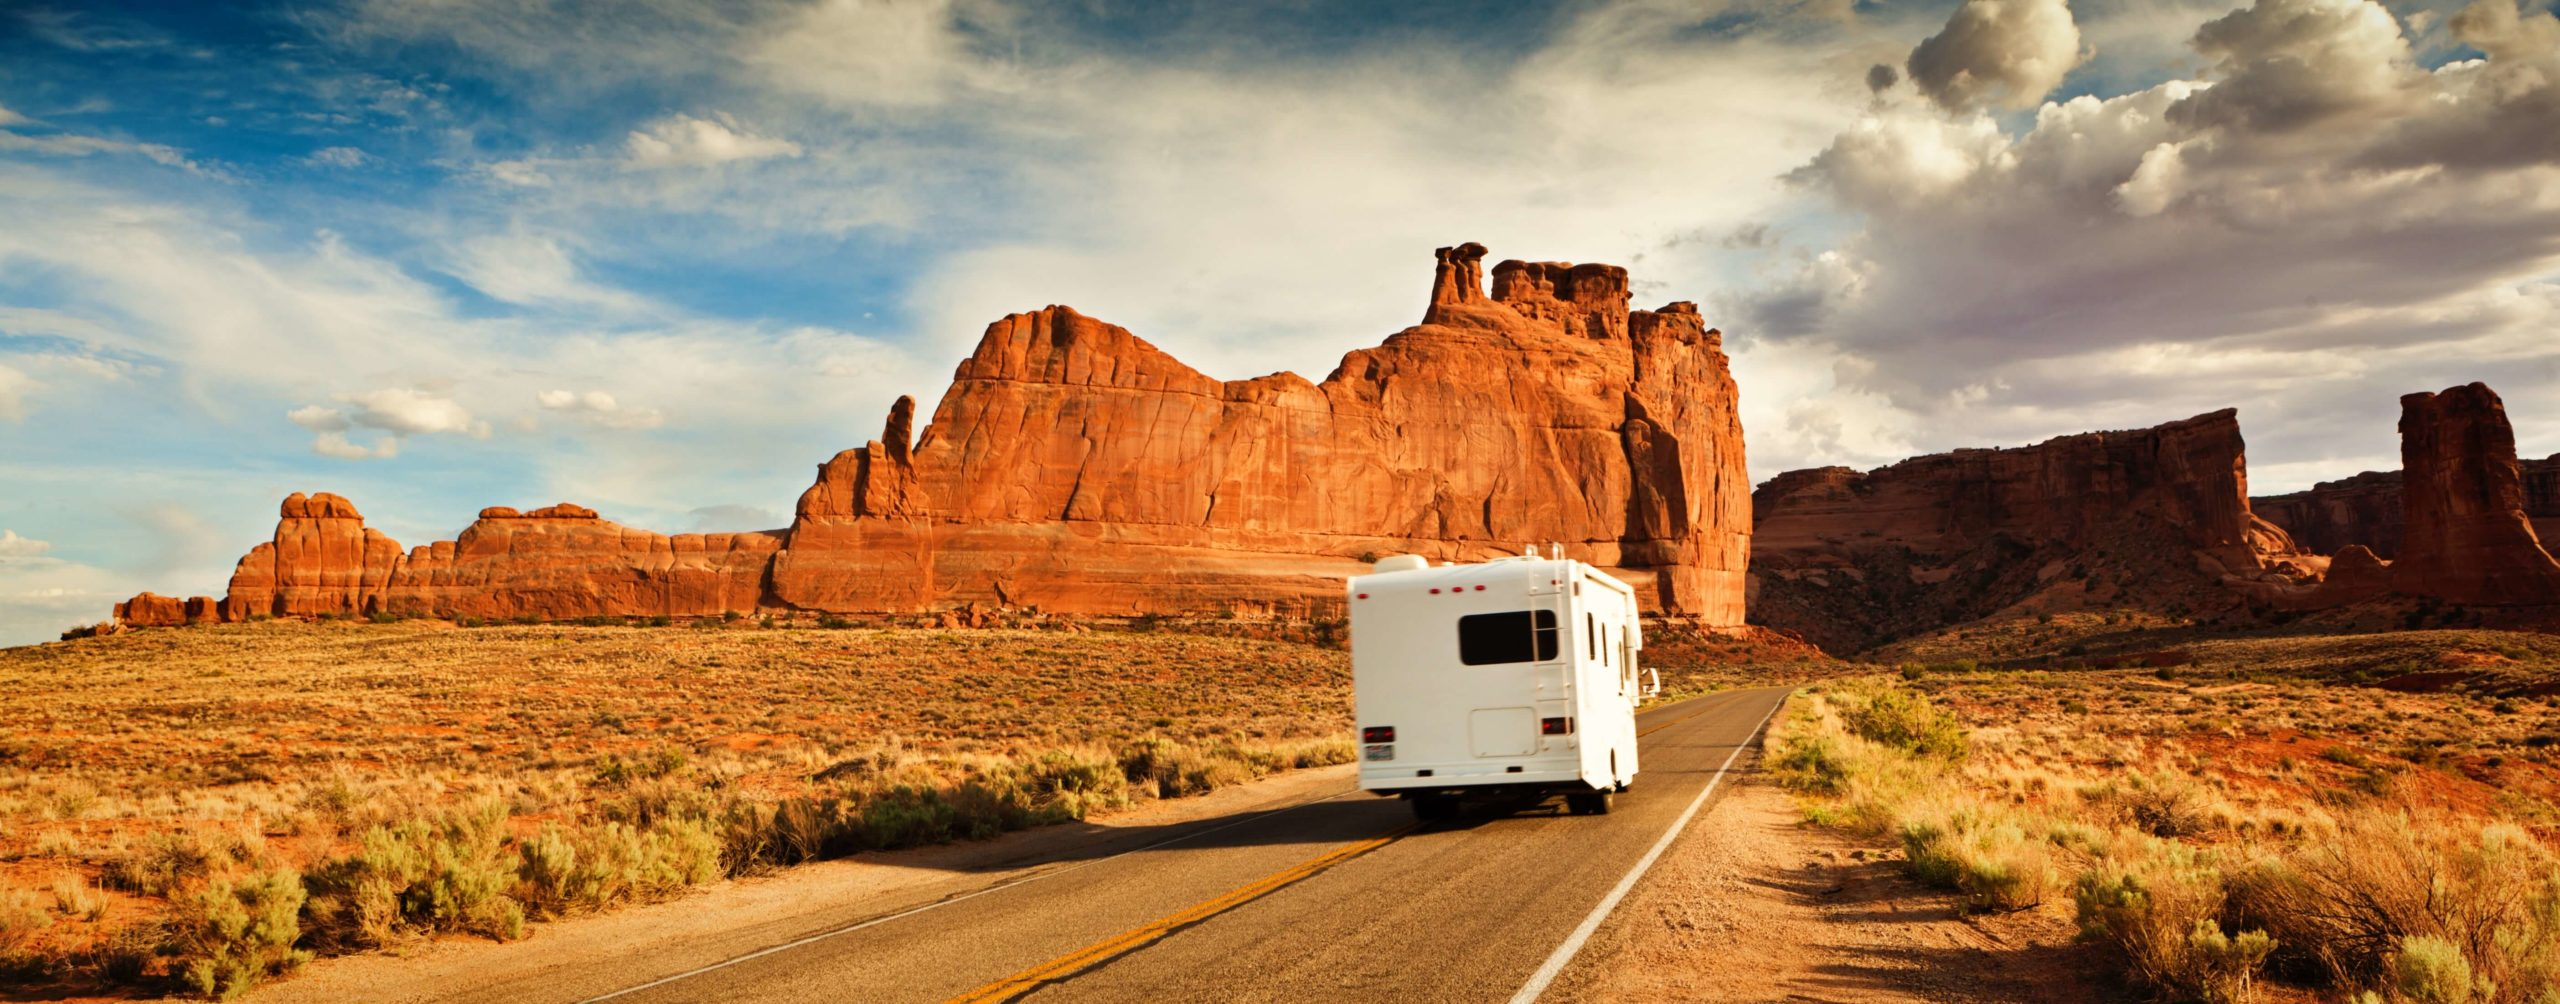 The 50 Best Luxury RV Parks in the US